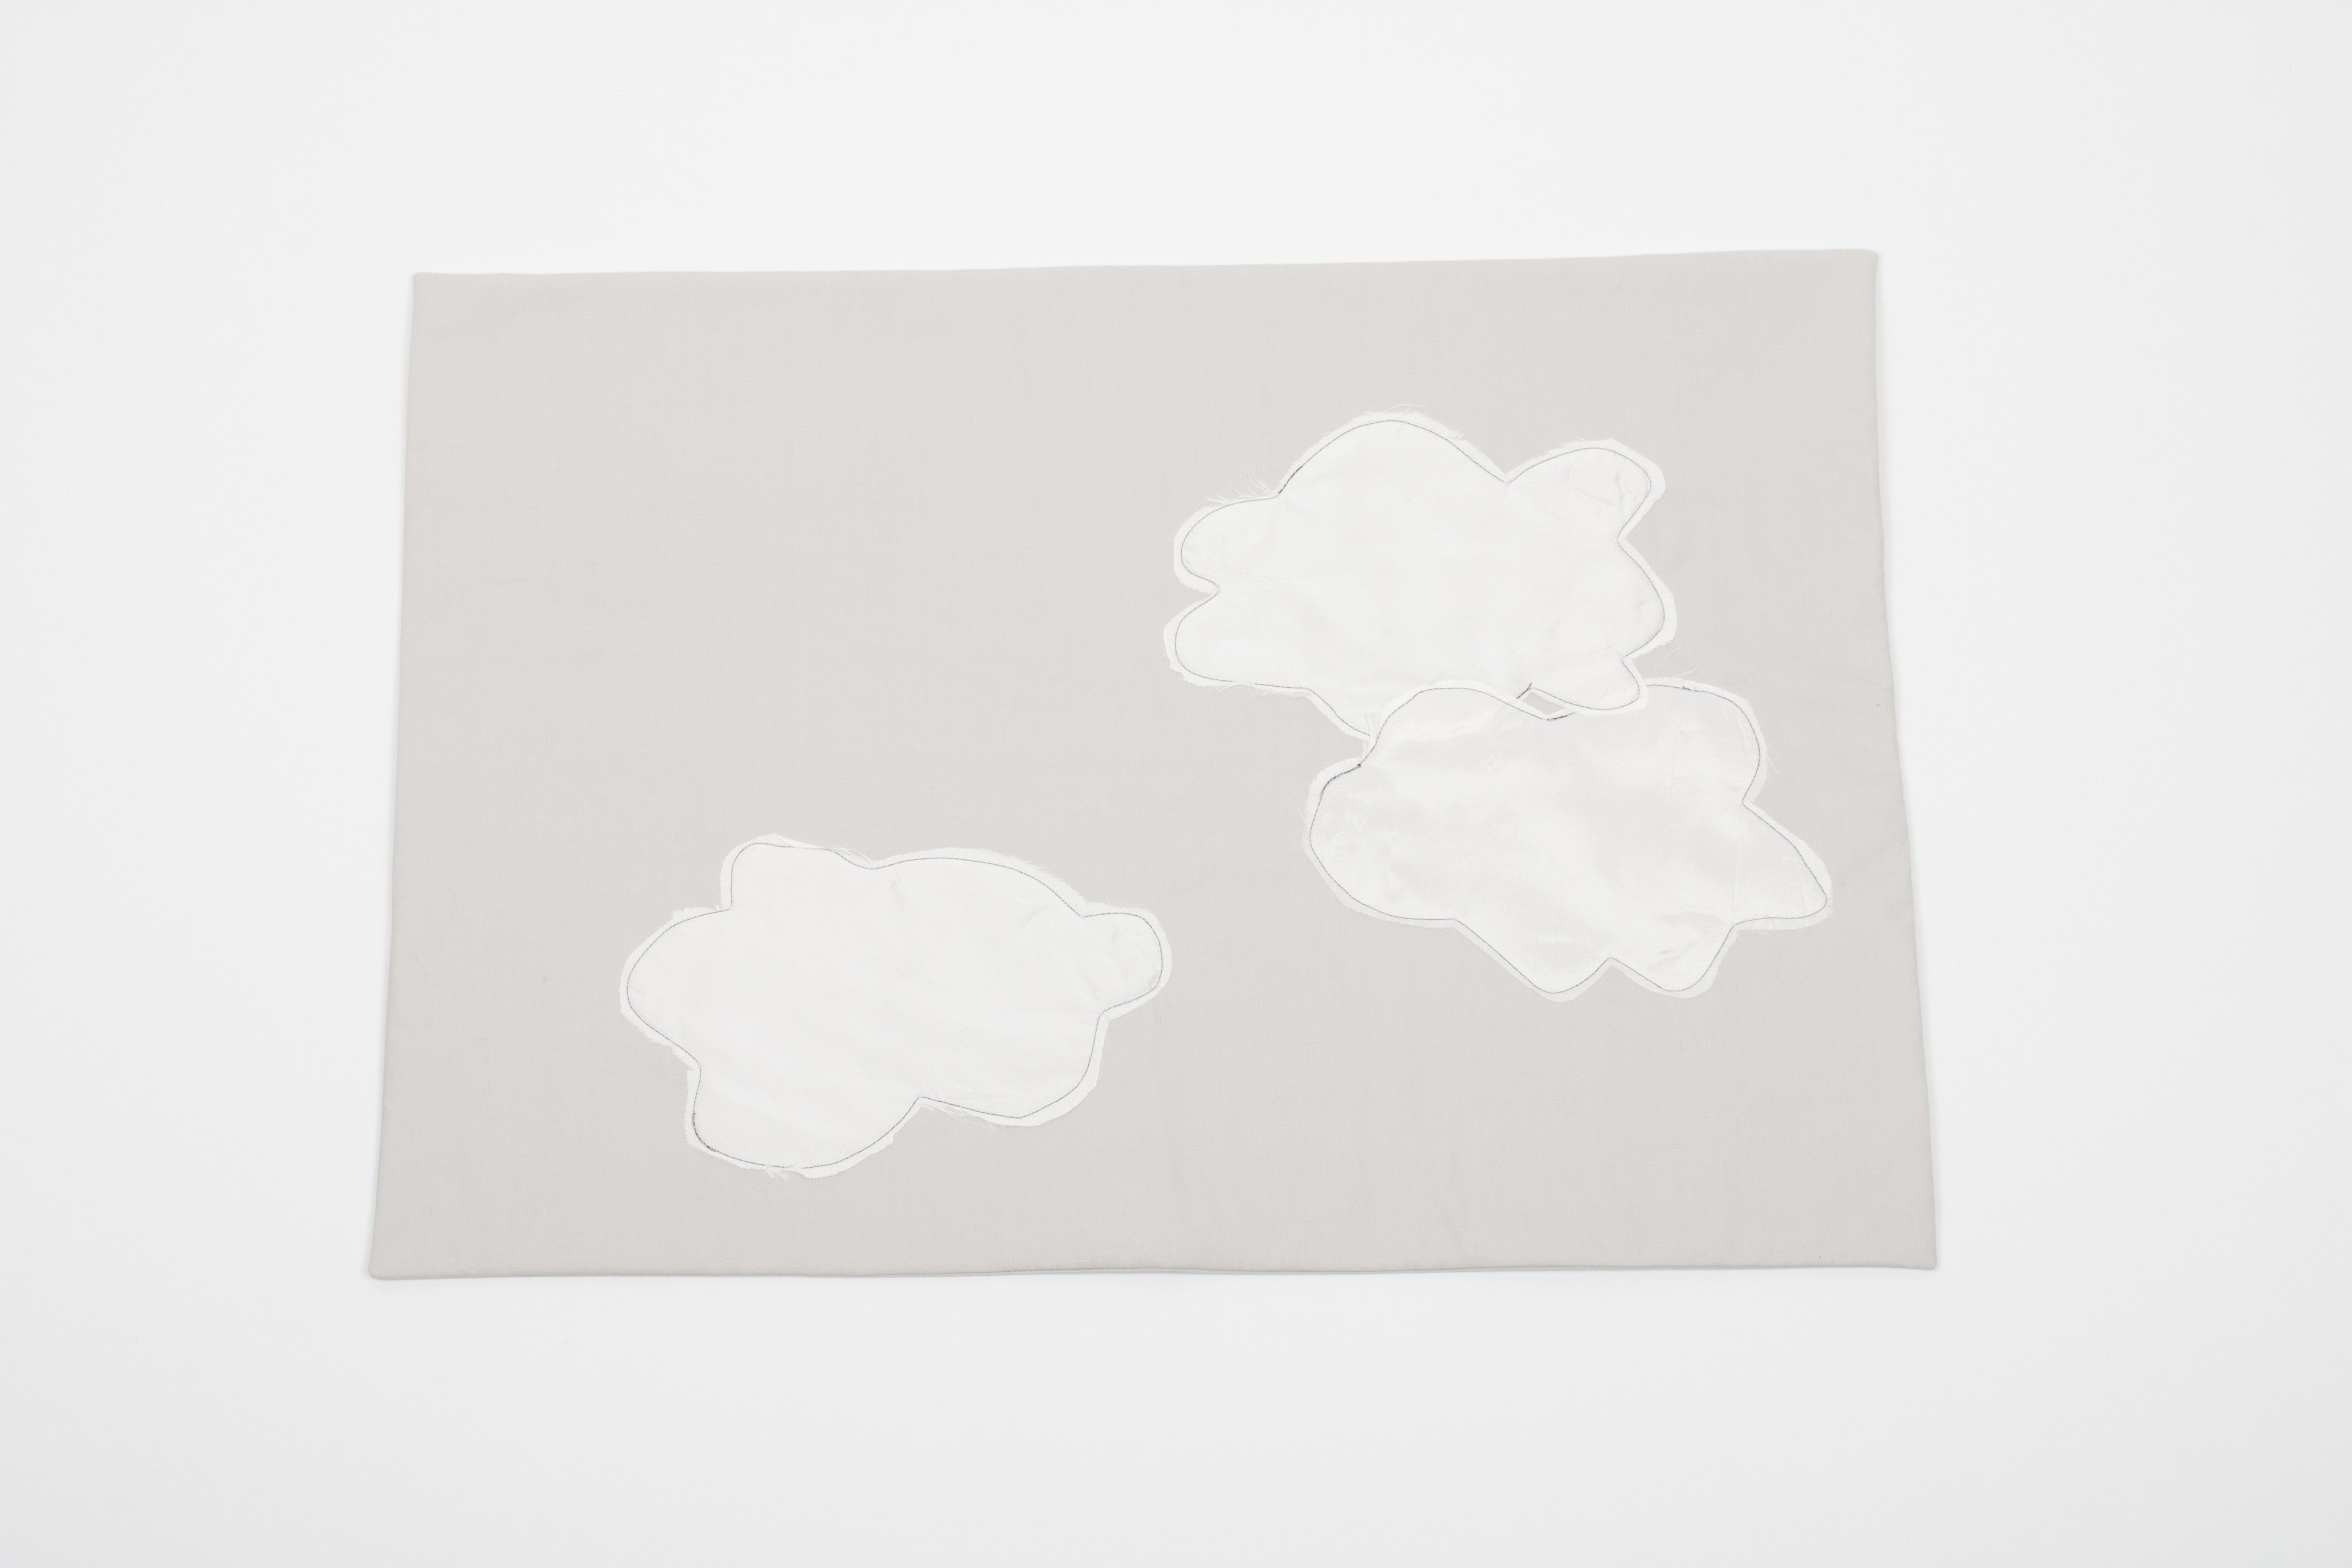 cloudy - set of 3